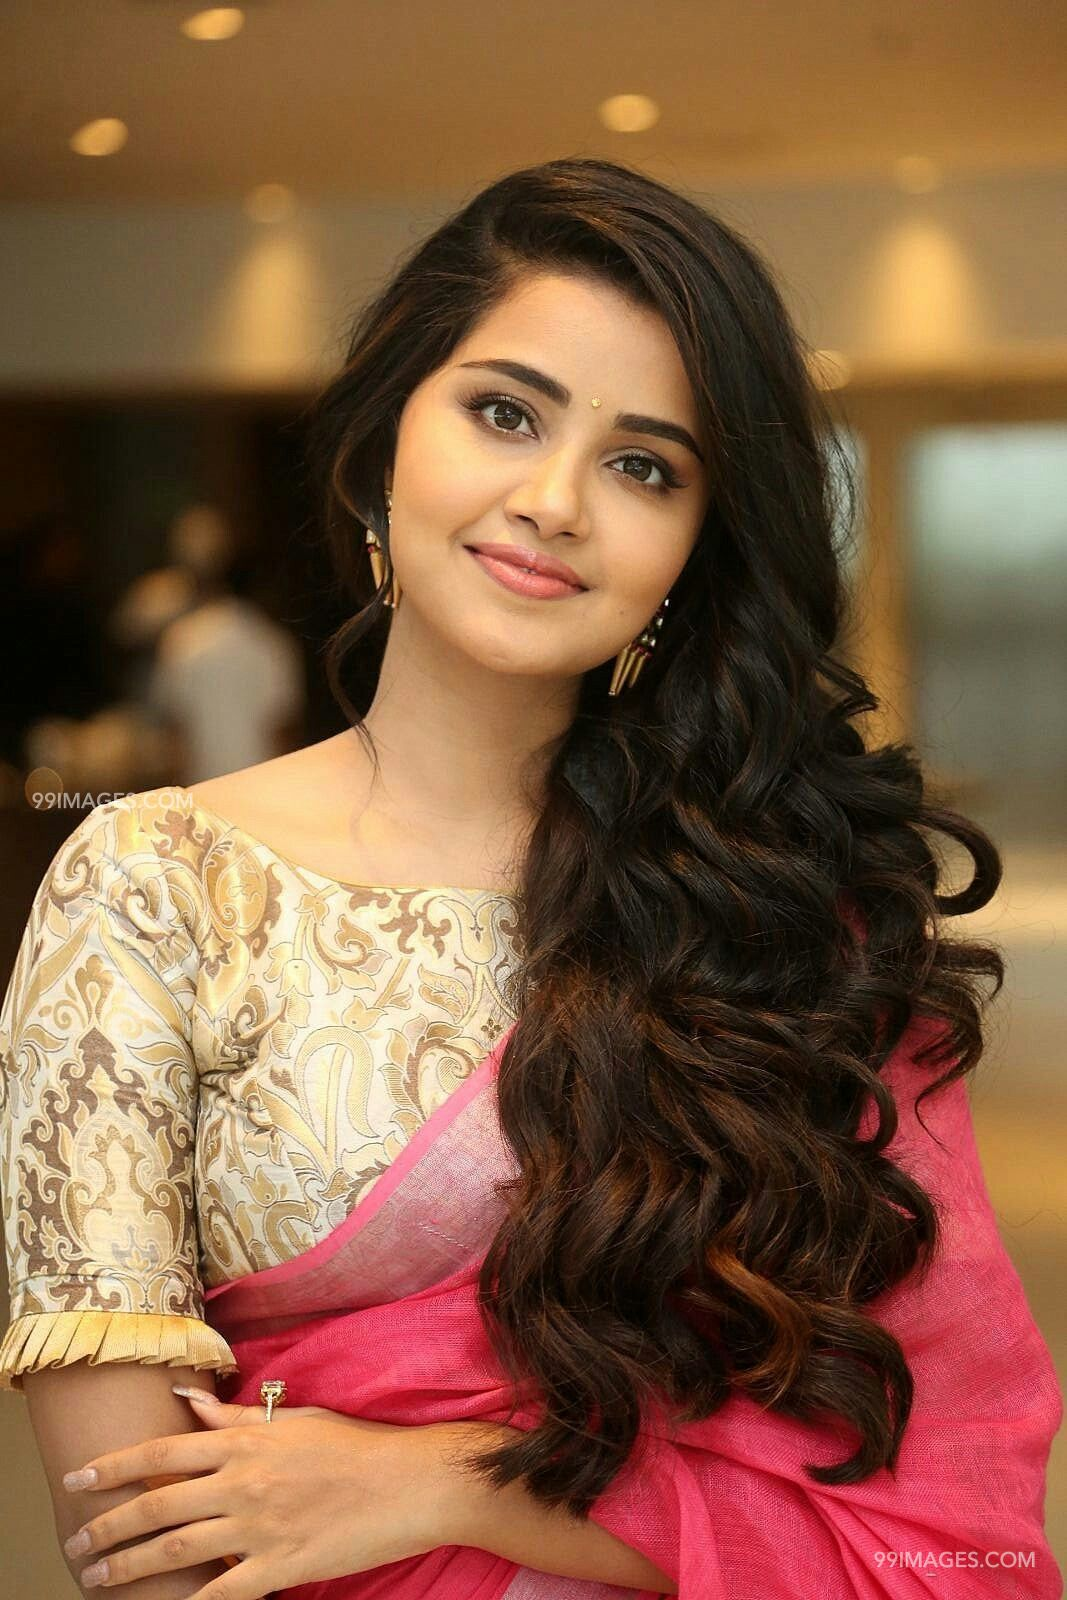 Anupama Parameswaran Hot HD Photos & Mobile Wallpapers (1080p) (anupama parameswaran, mollywood, tollywood, actress, kollywood) (4751) - Anupama Parameswaran